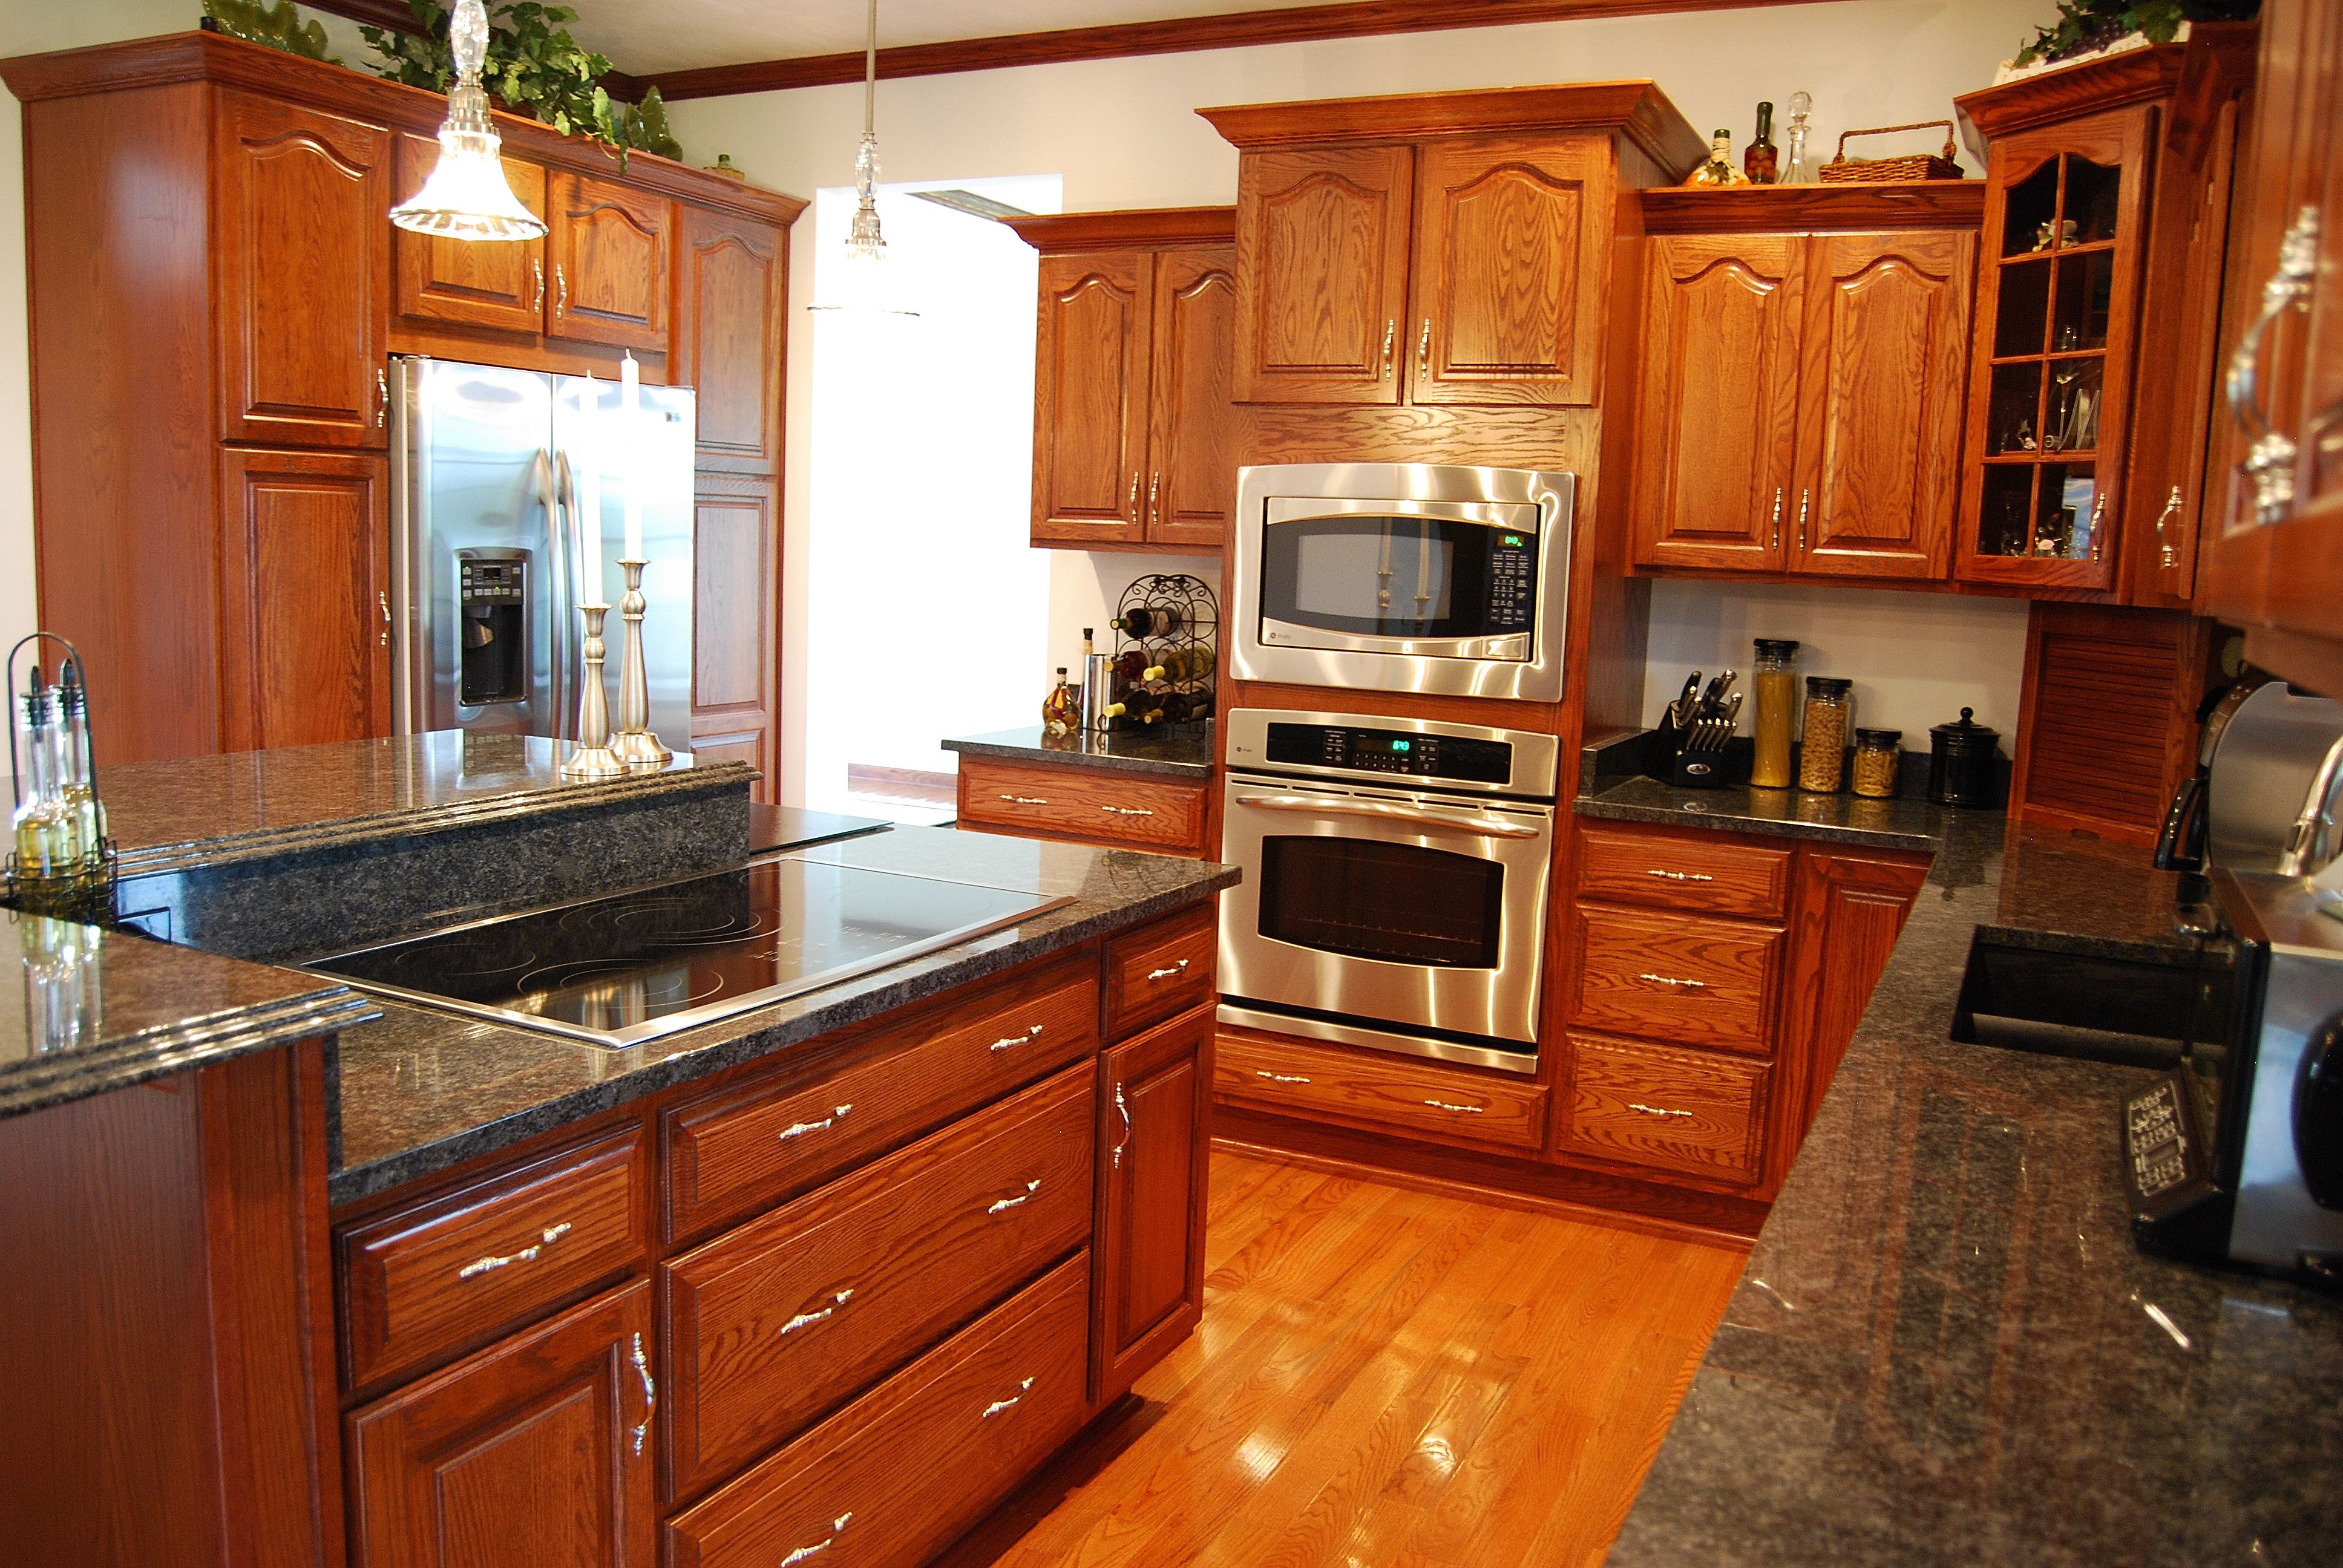 kraftmaid cabinet hardware kraftmaid kitchen cabinet prices Great And Recommended Kraftmaid Cabinets For More Beautiful Kitchen Decor Ideas Peru Kraftmaid Cabinets With